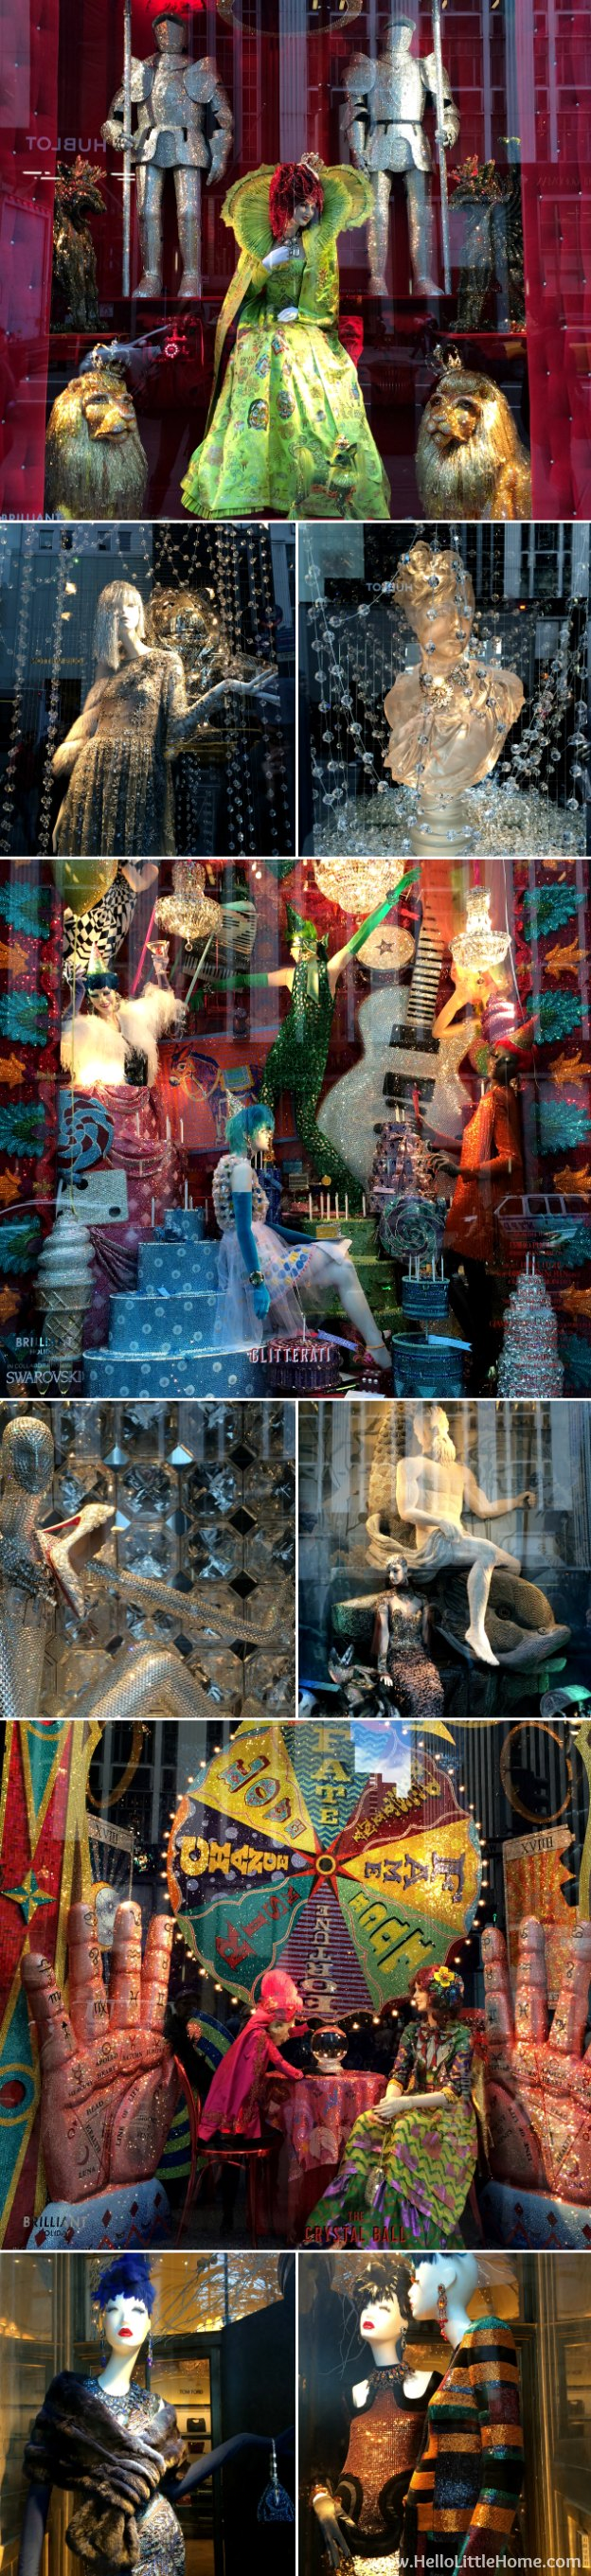 Join me on my NYC Holiday Tour 2015 of Christmas window displays, trees, and lights! Bergdorf Goodman | Hello Little Home